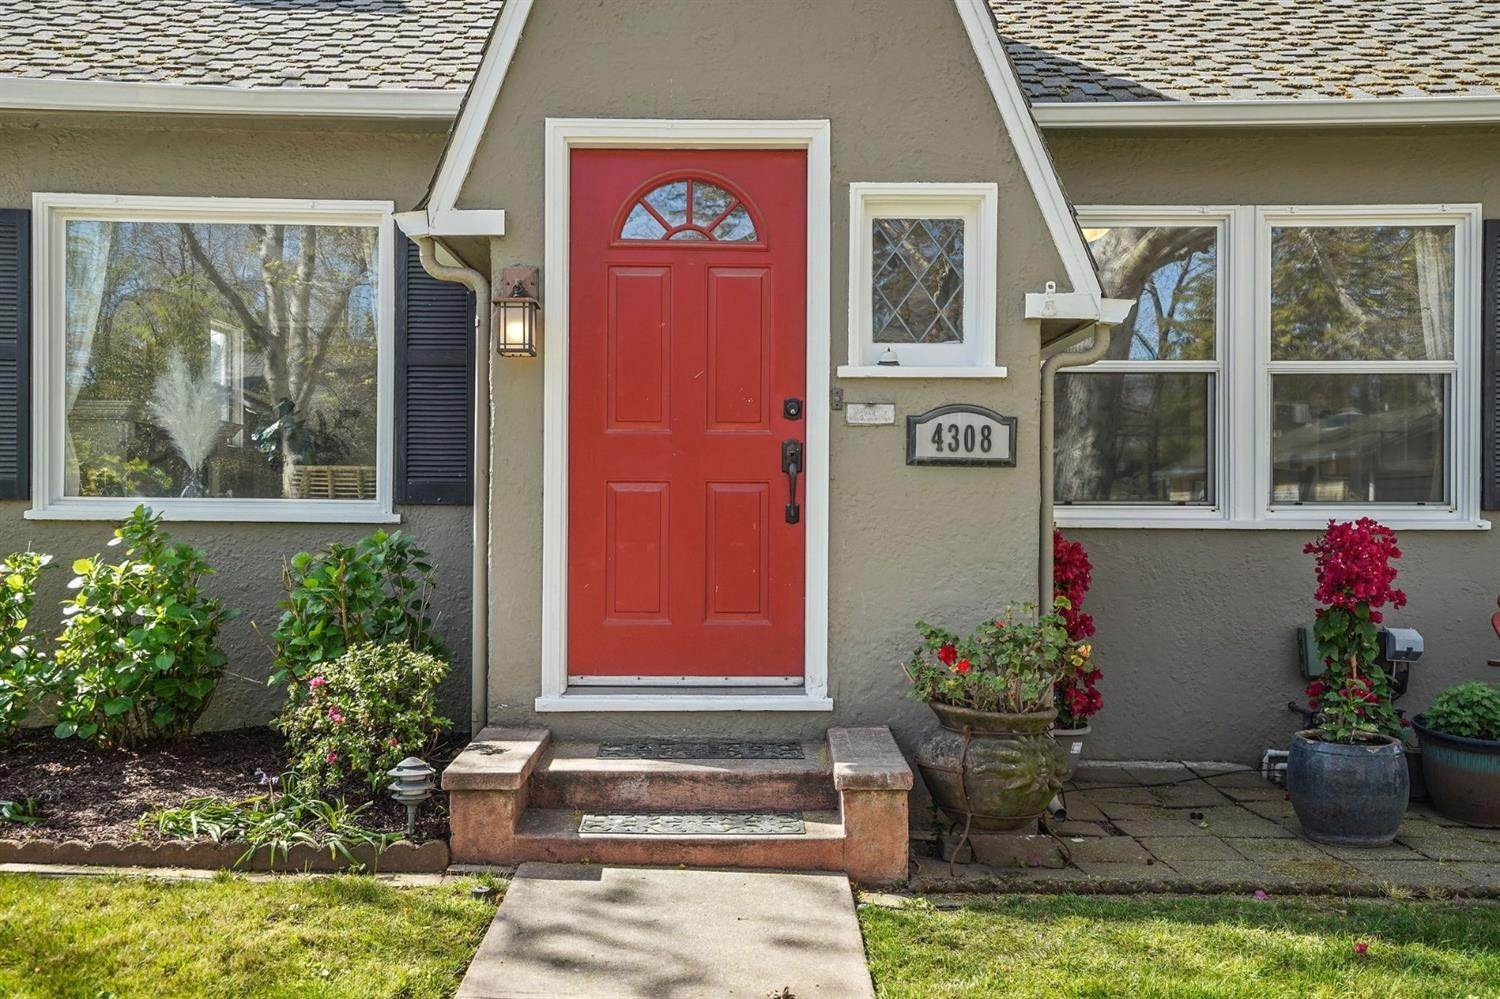 2. Single Family Homes for Active at 4308 U Street Sacramento, California 95817 United States